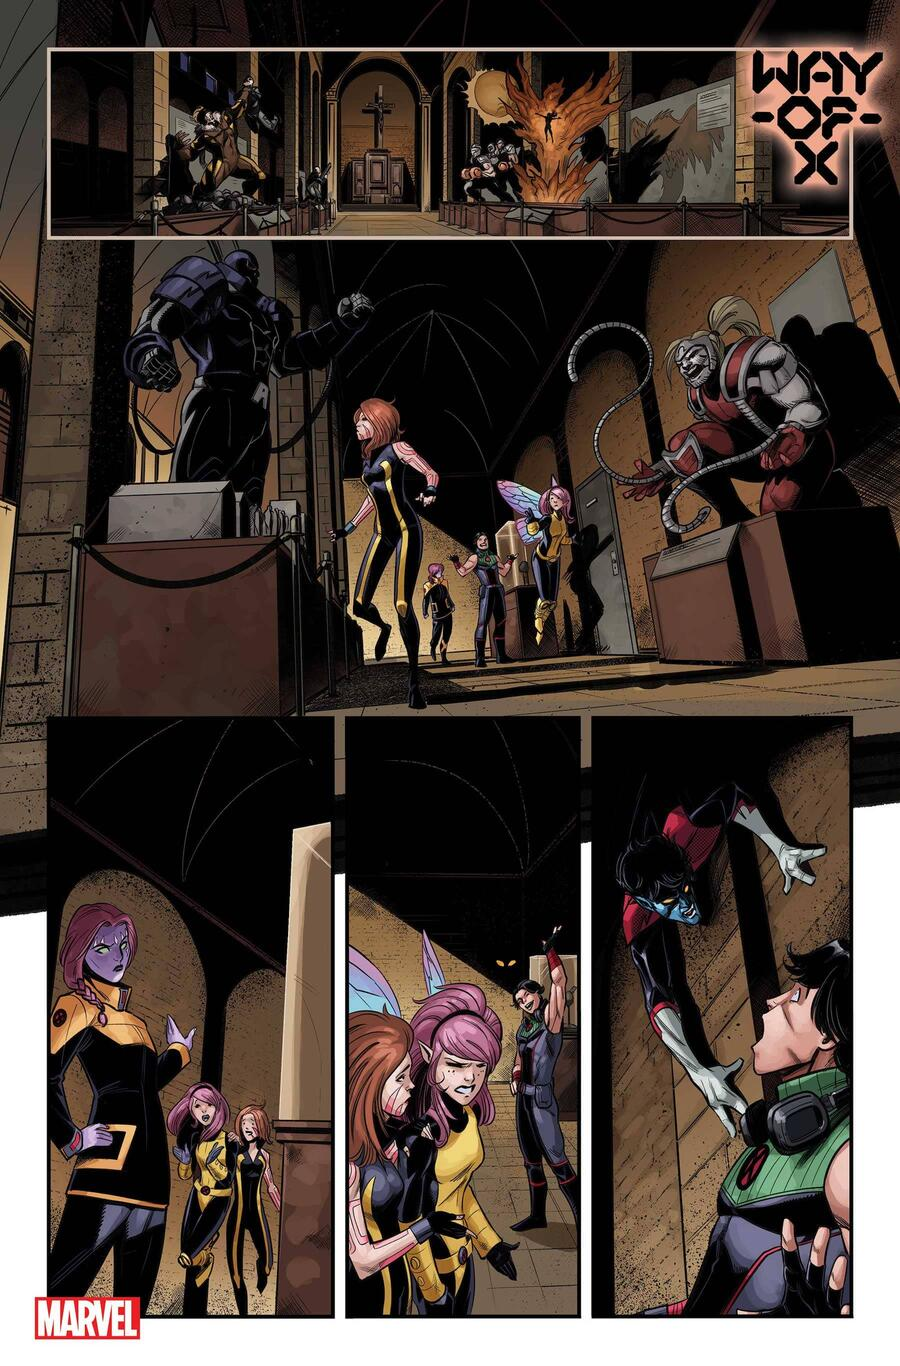 WAY OF X #1 preview interiors by Bob Quinn with colors by Java Tartaglia